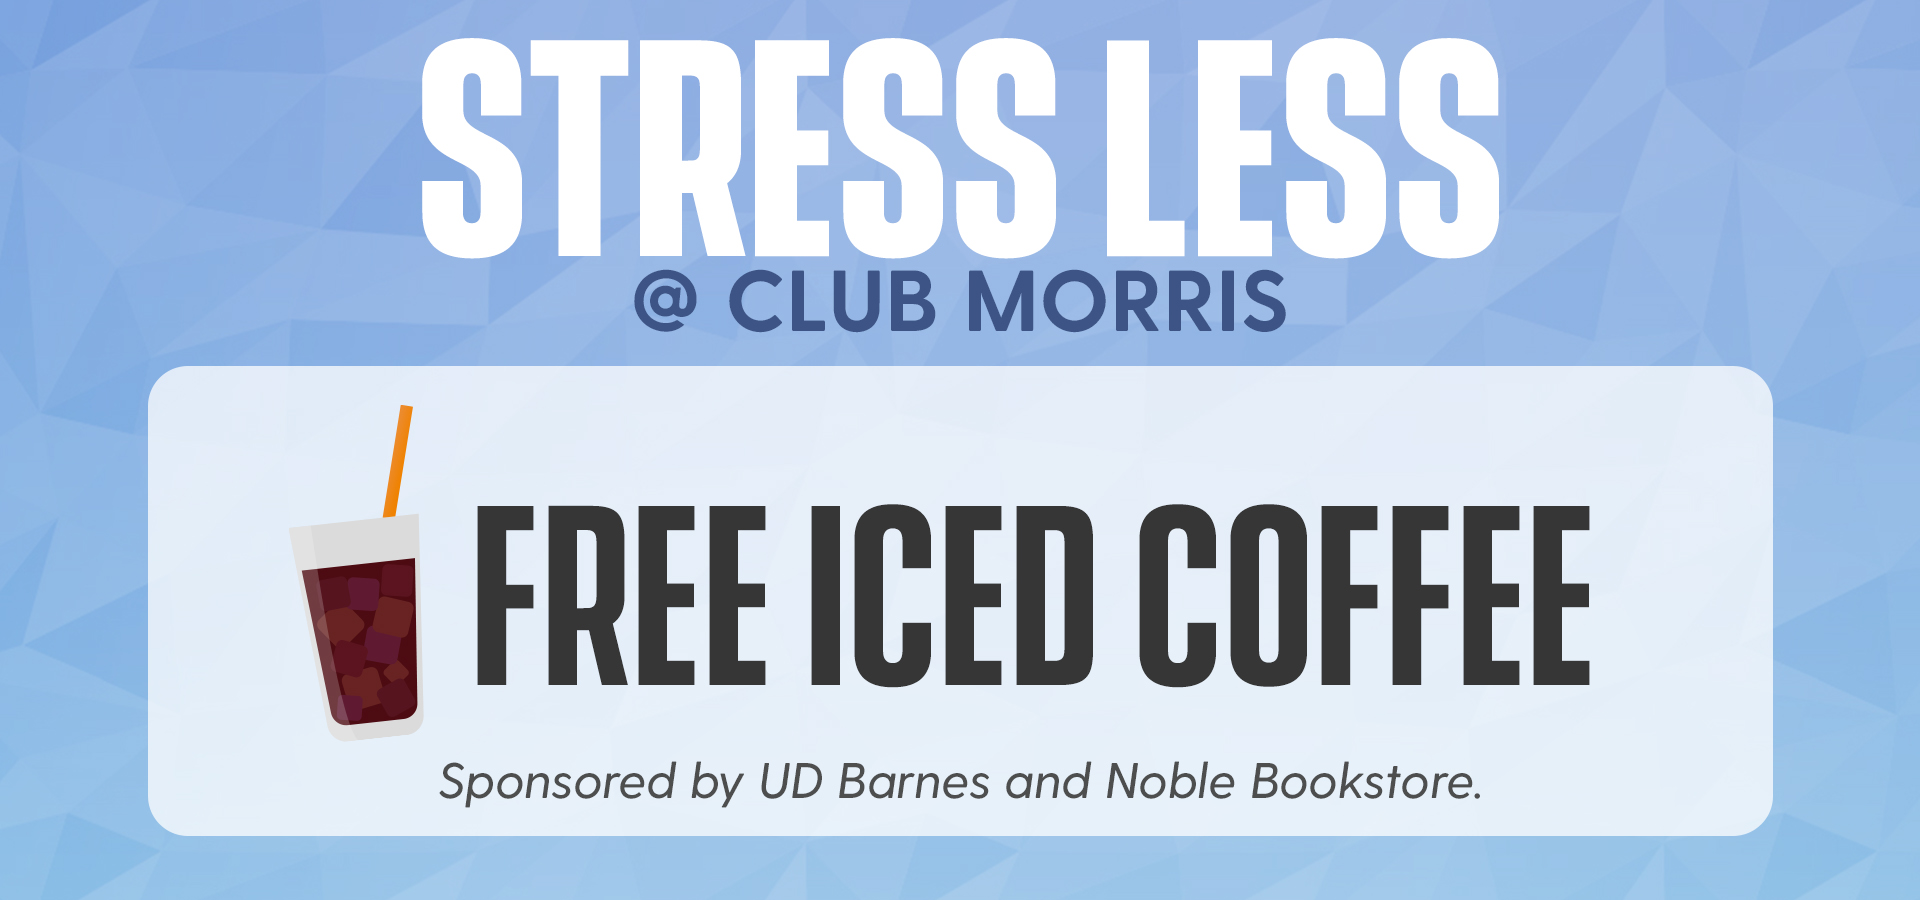 Promotional image for Free Iced Coffee